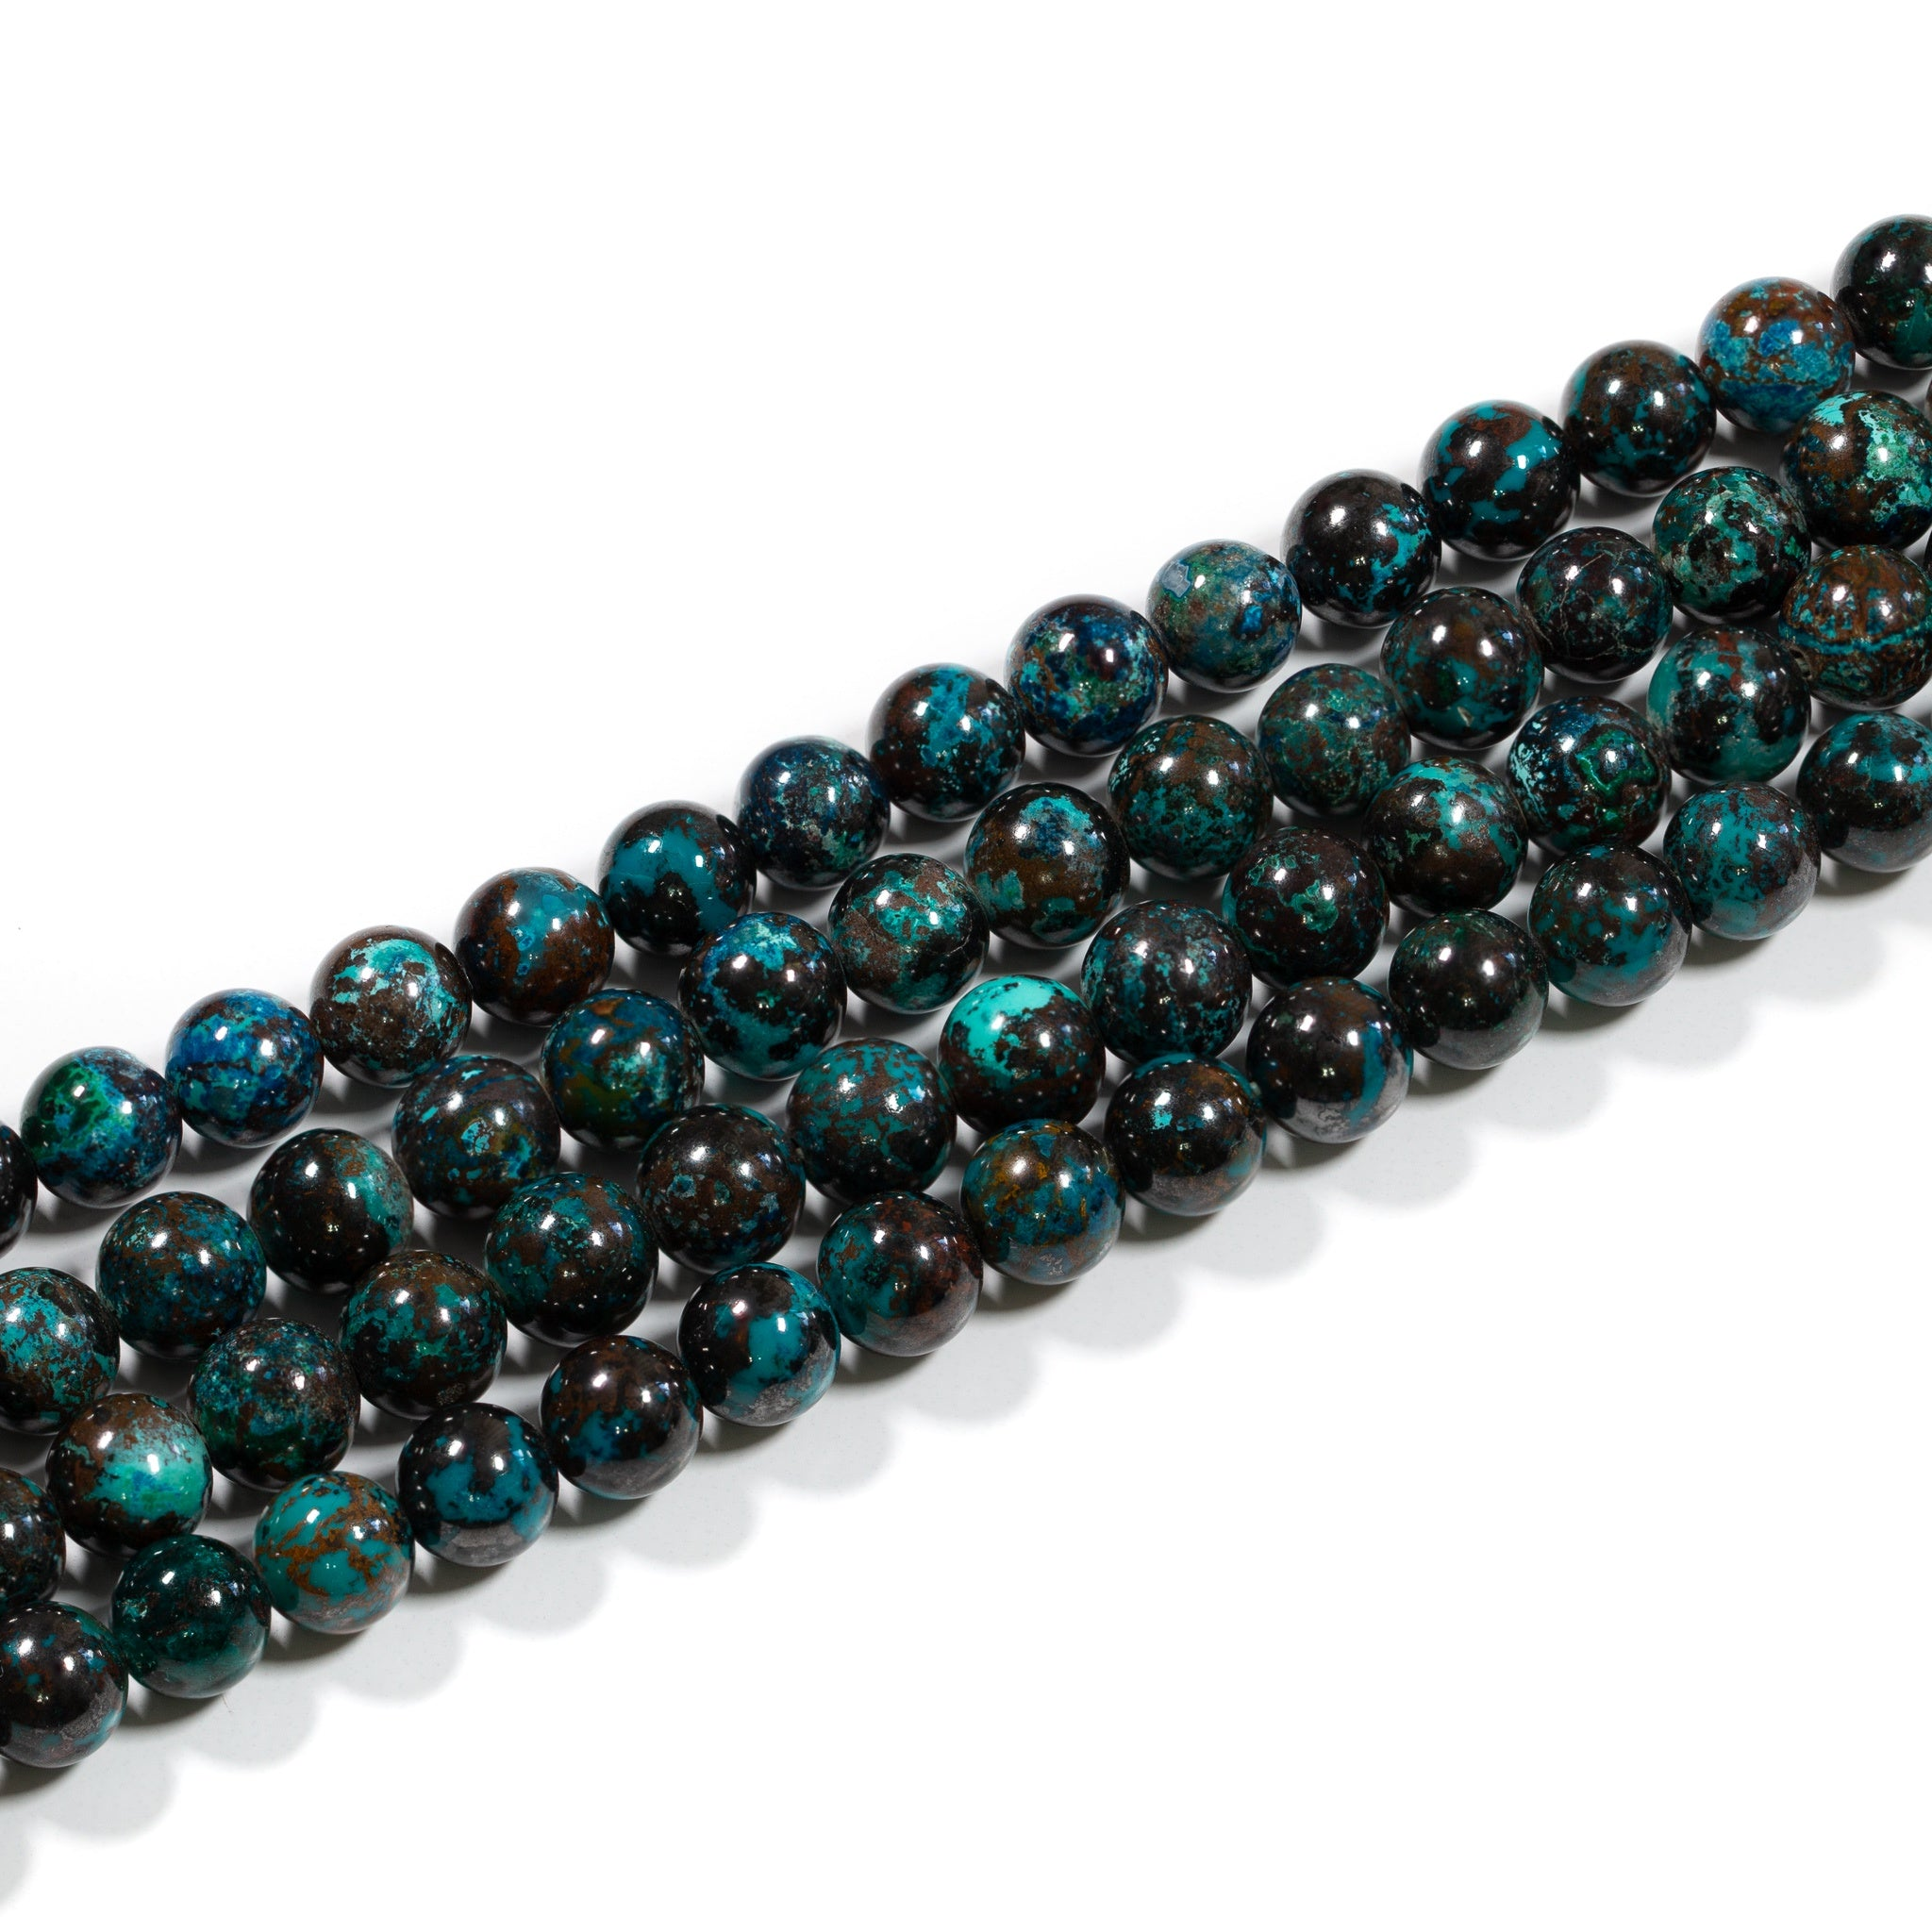 Chrysocolla Strand - 6mm Smooth Round